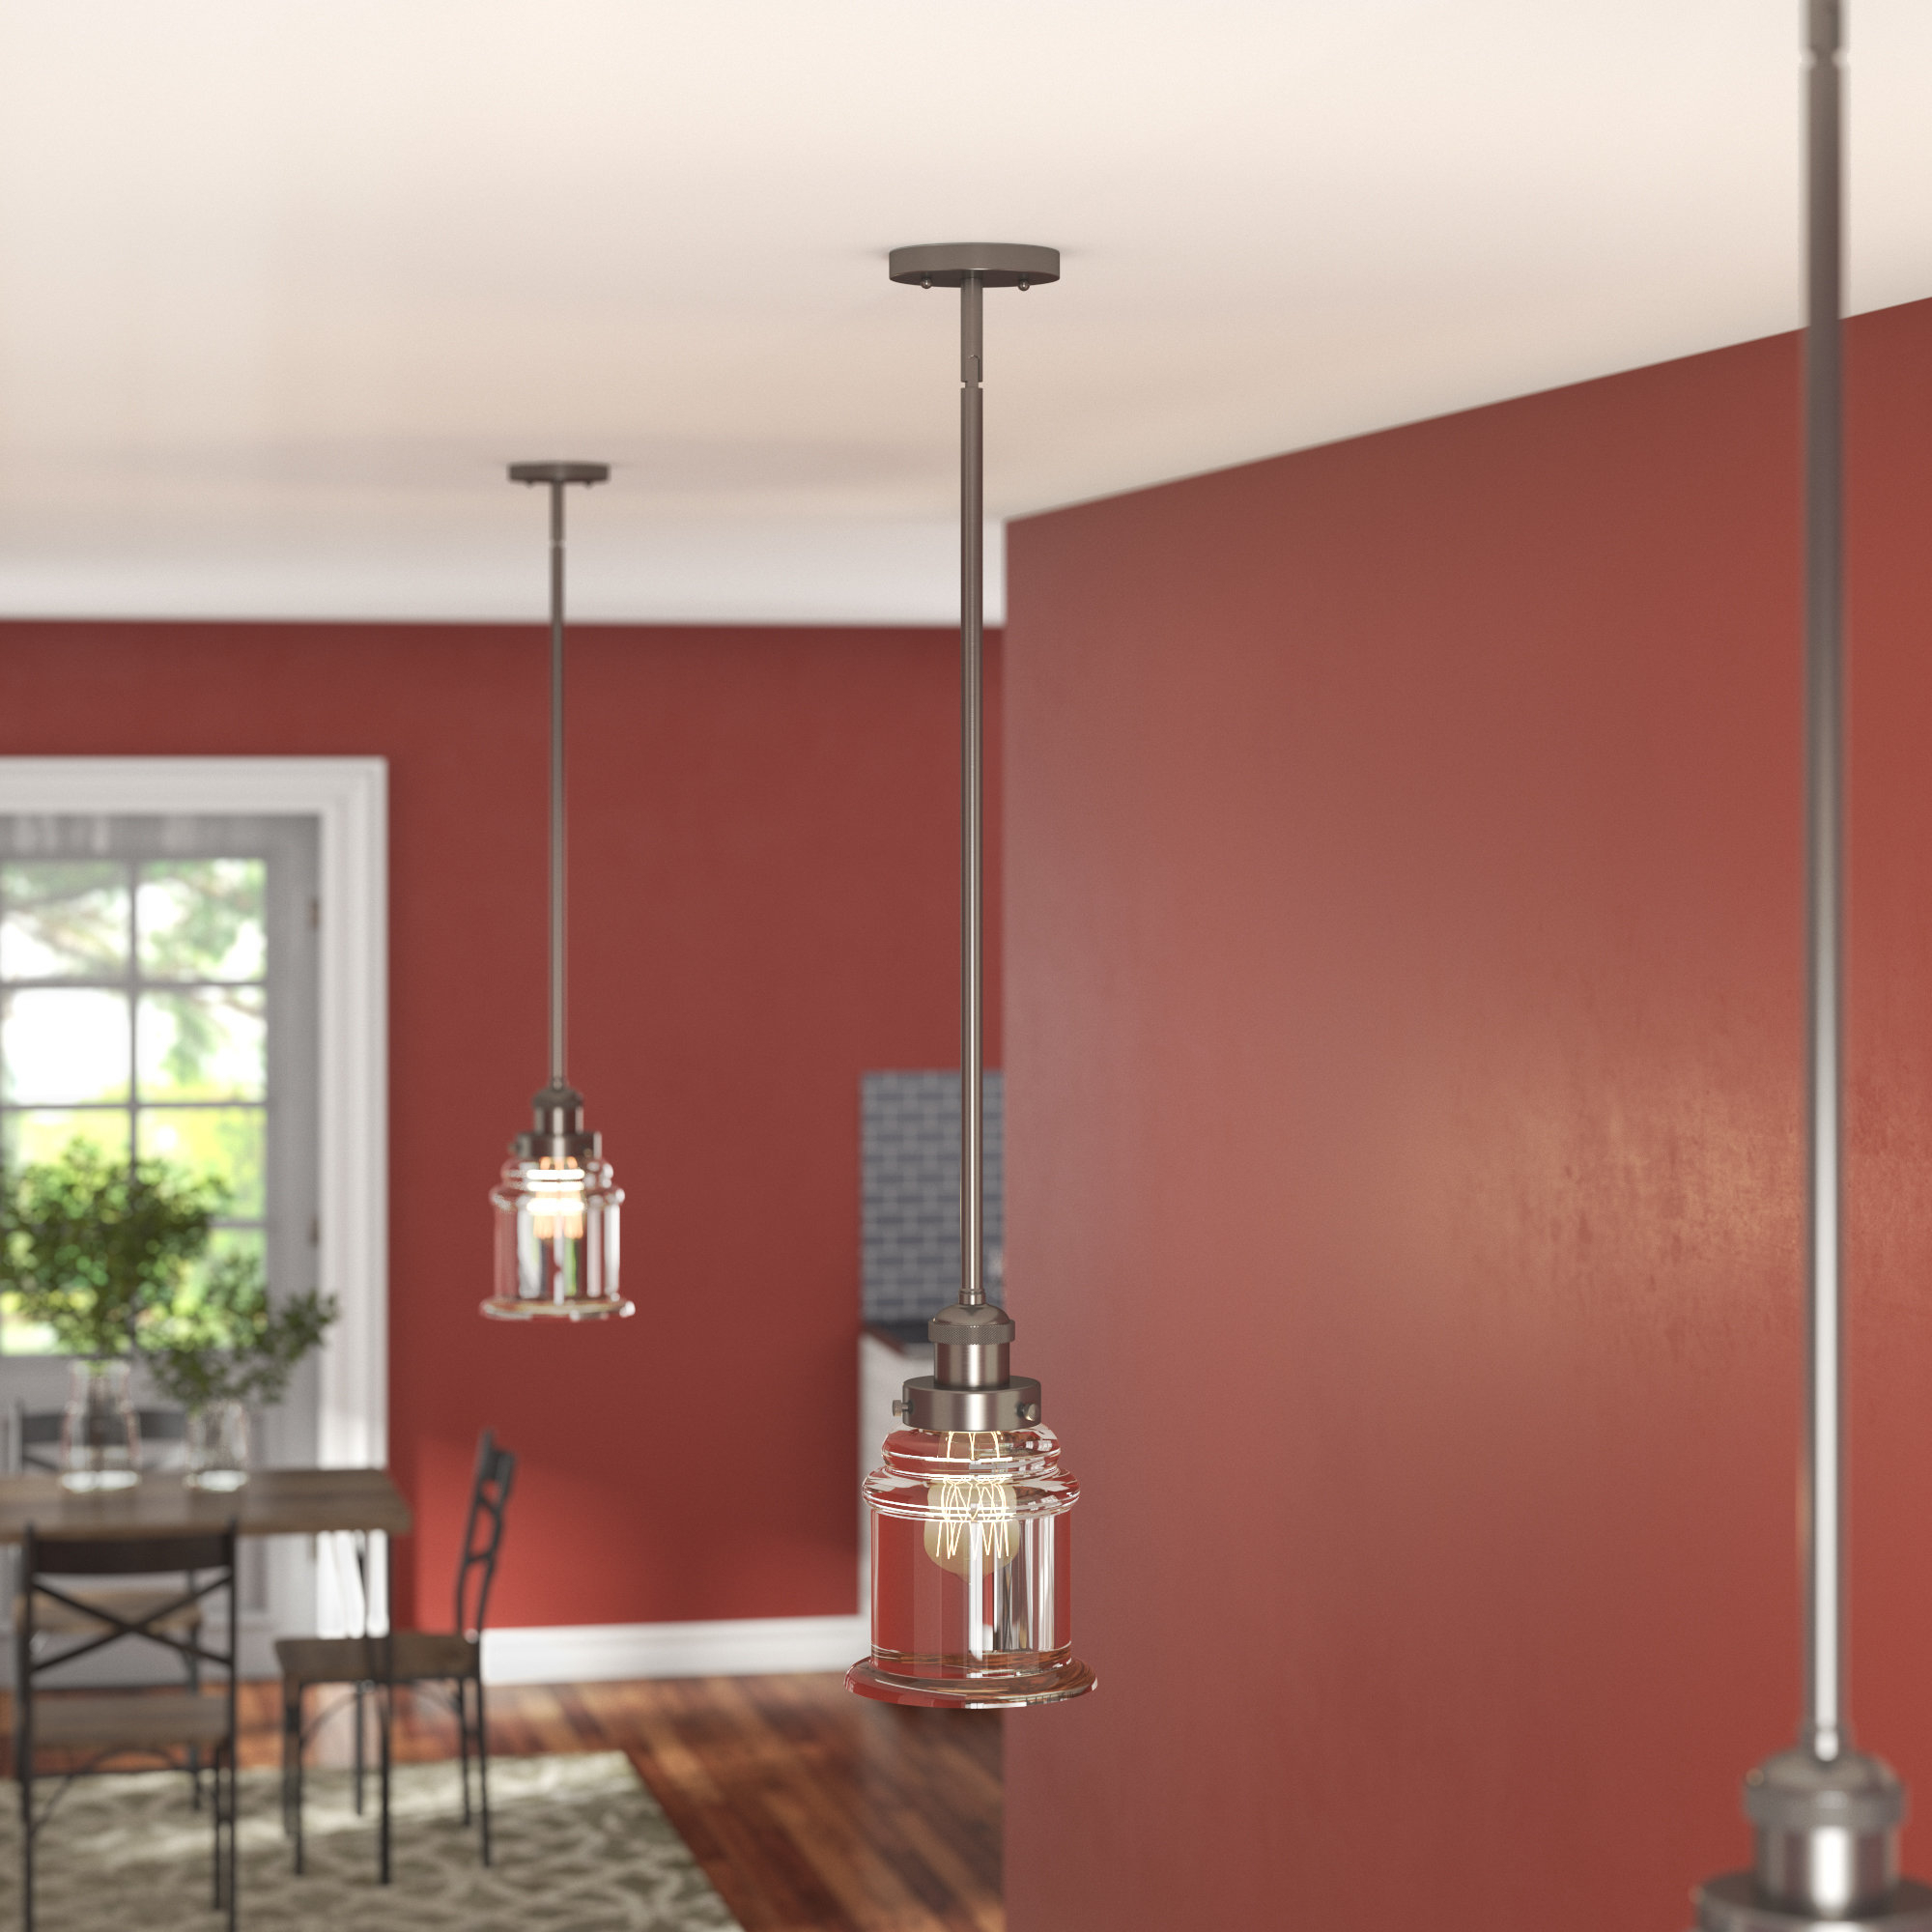 Bell Pendant Light Fixture – The Arts With Regard To Grullon Scroll 1 Light Single Bell Pendants (View 23 of 30)